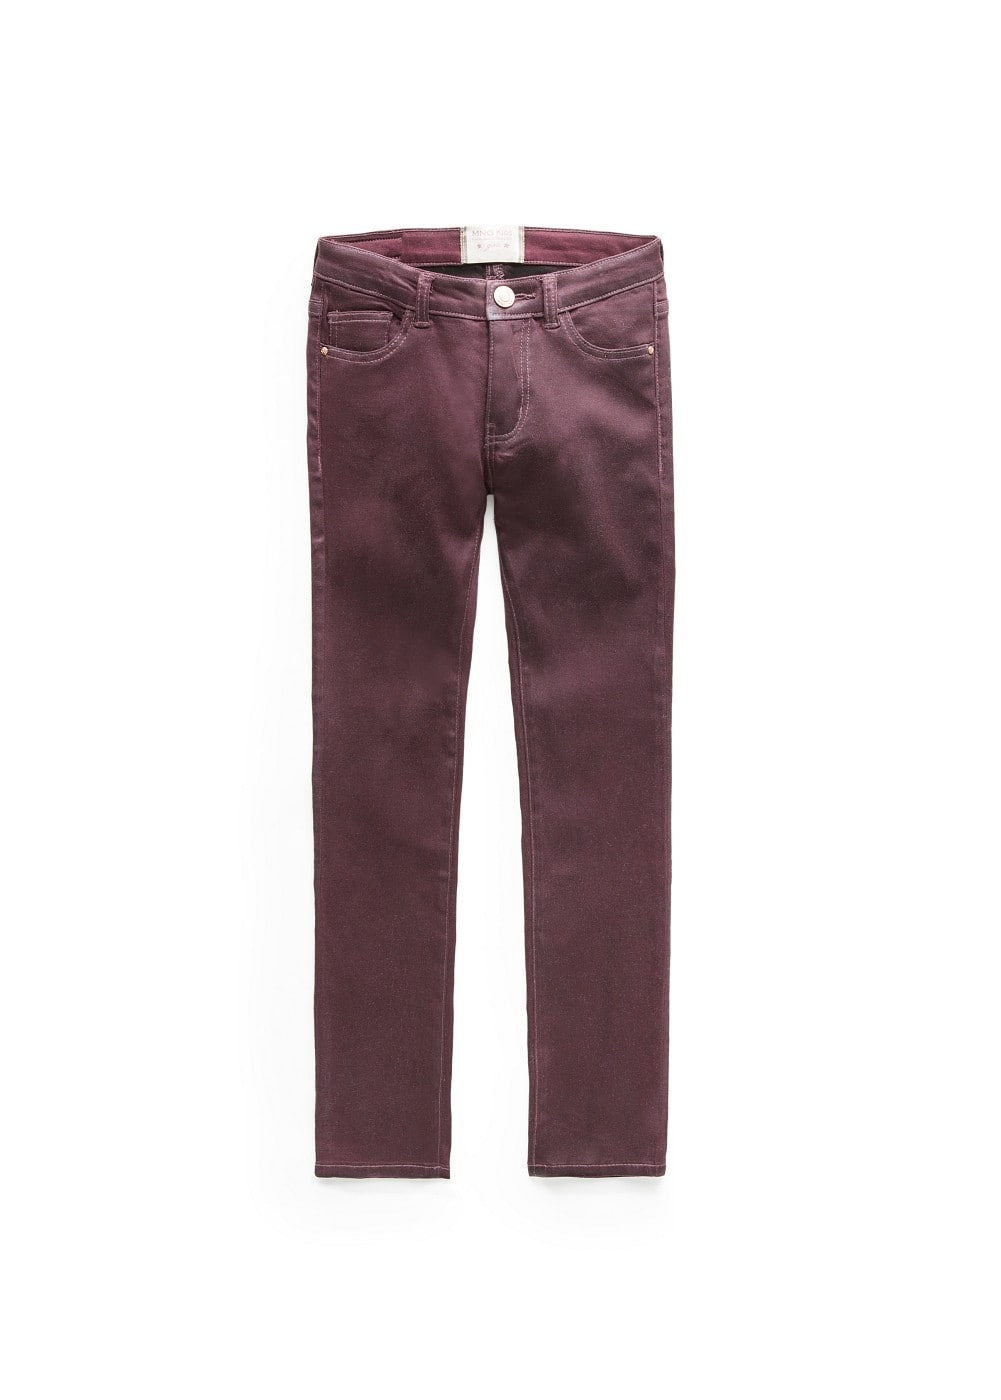 Coated burgundy jeans